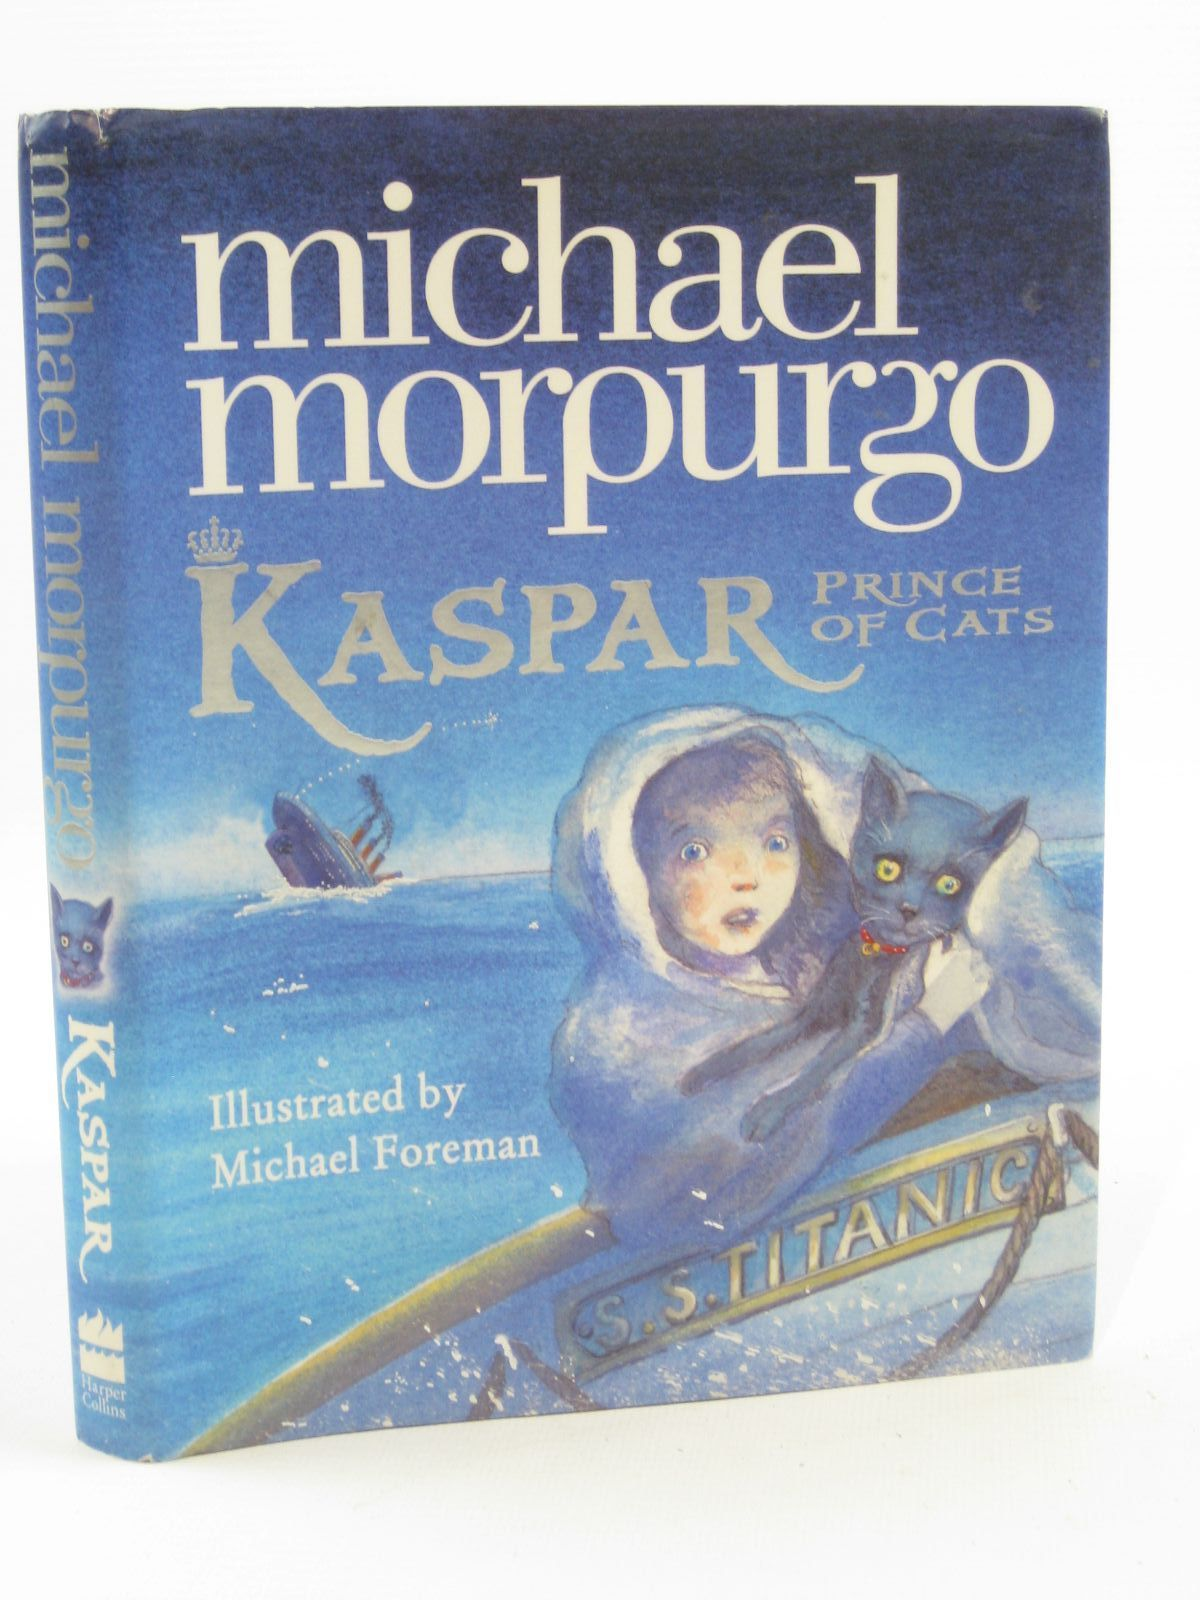 Photo of KASPAR PRINCE OF CATS written by Morpurgo, Michael illustrated by Foreman, Michael published by Harper Collins (STOCK CODE: 1407118)  for sale by Stella & Rose's Books